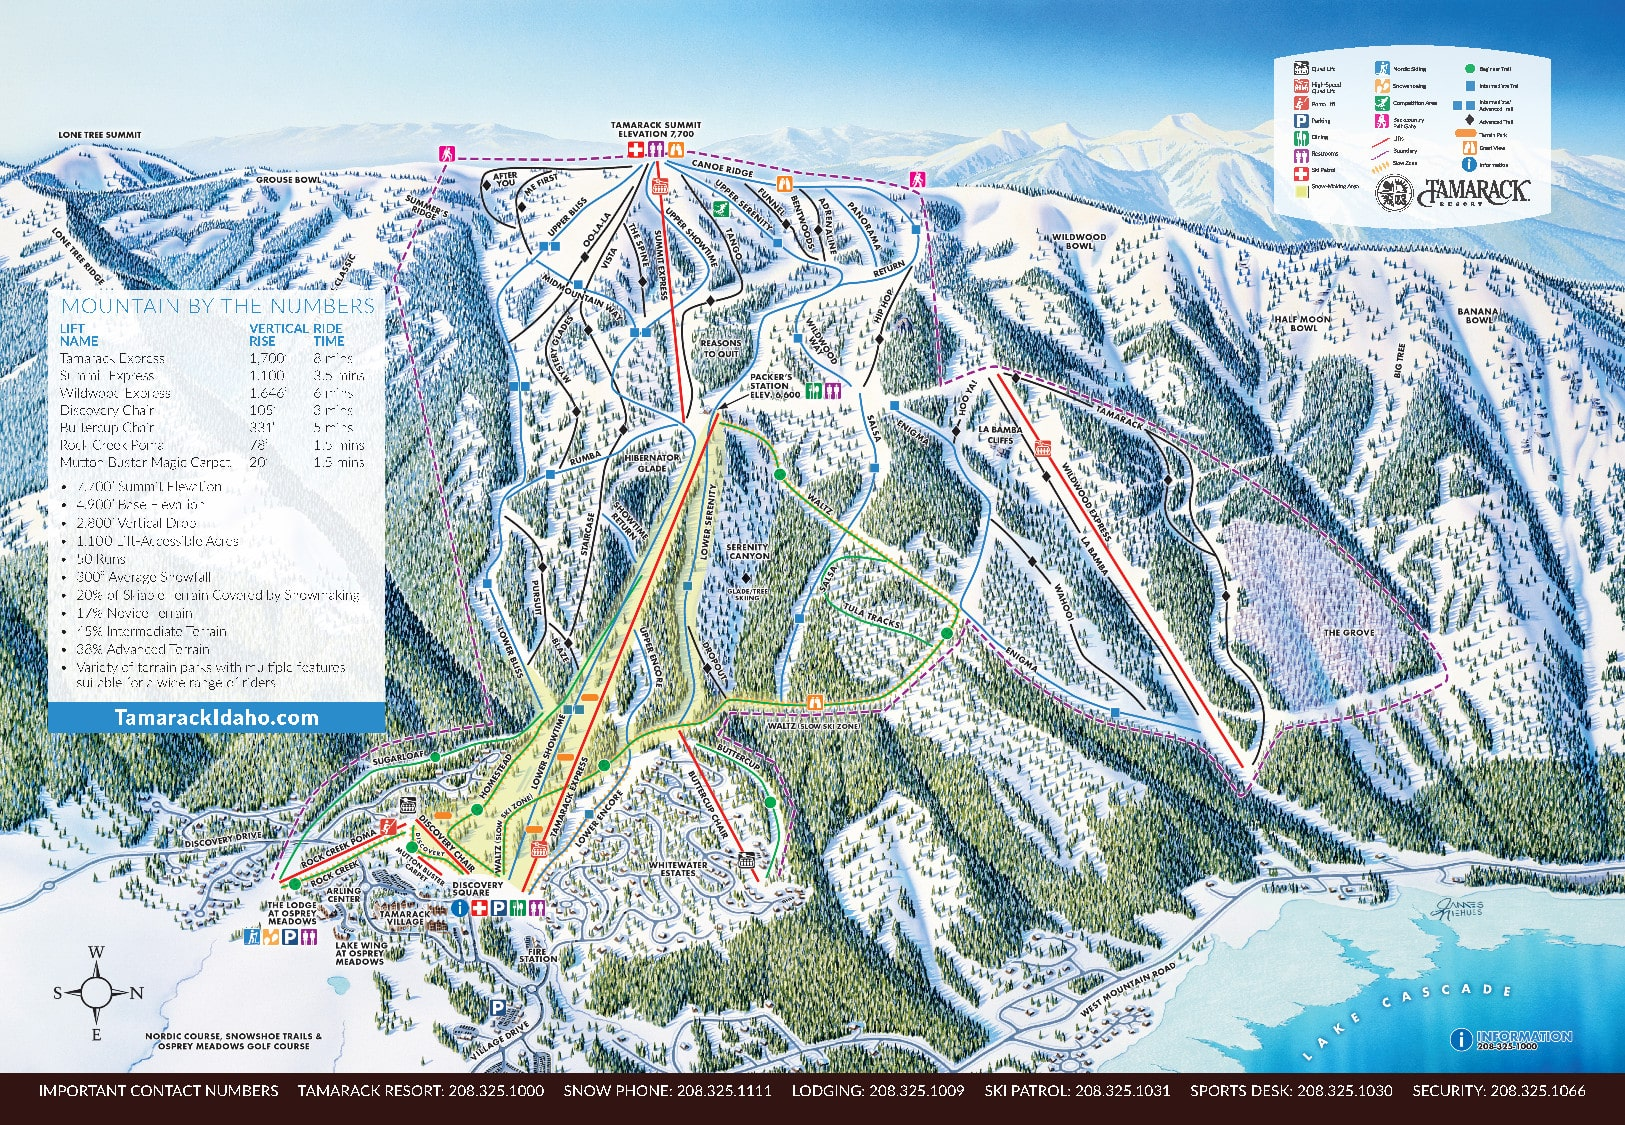 Tamarack Piste / Trail Map